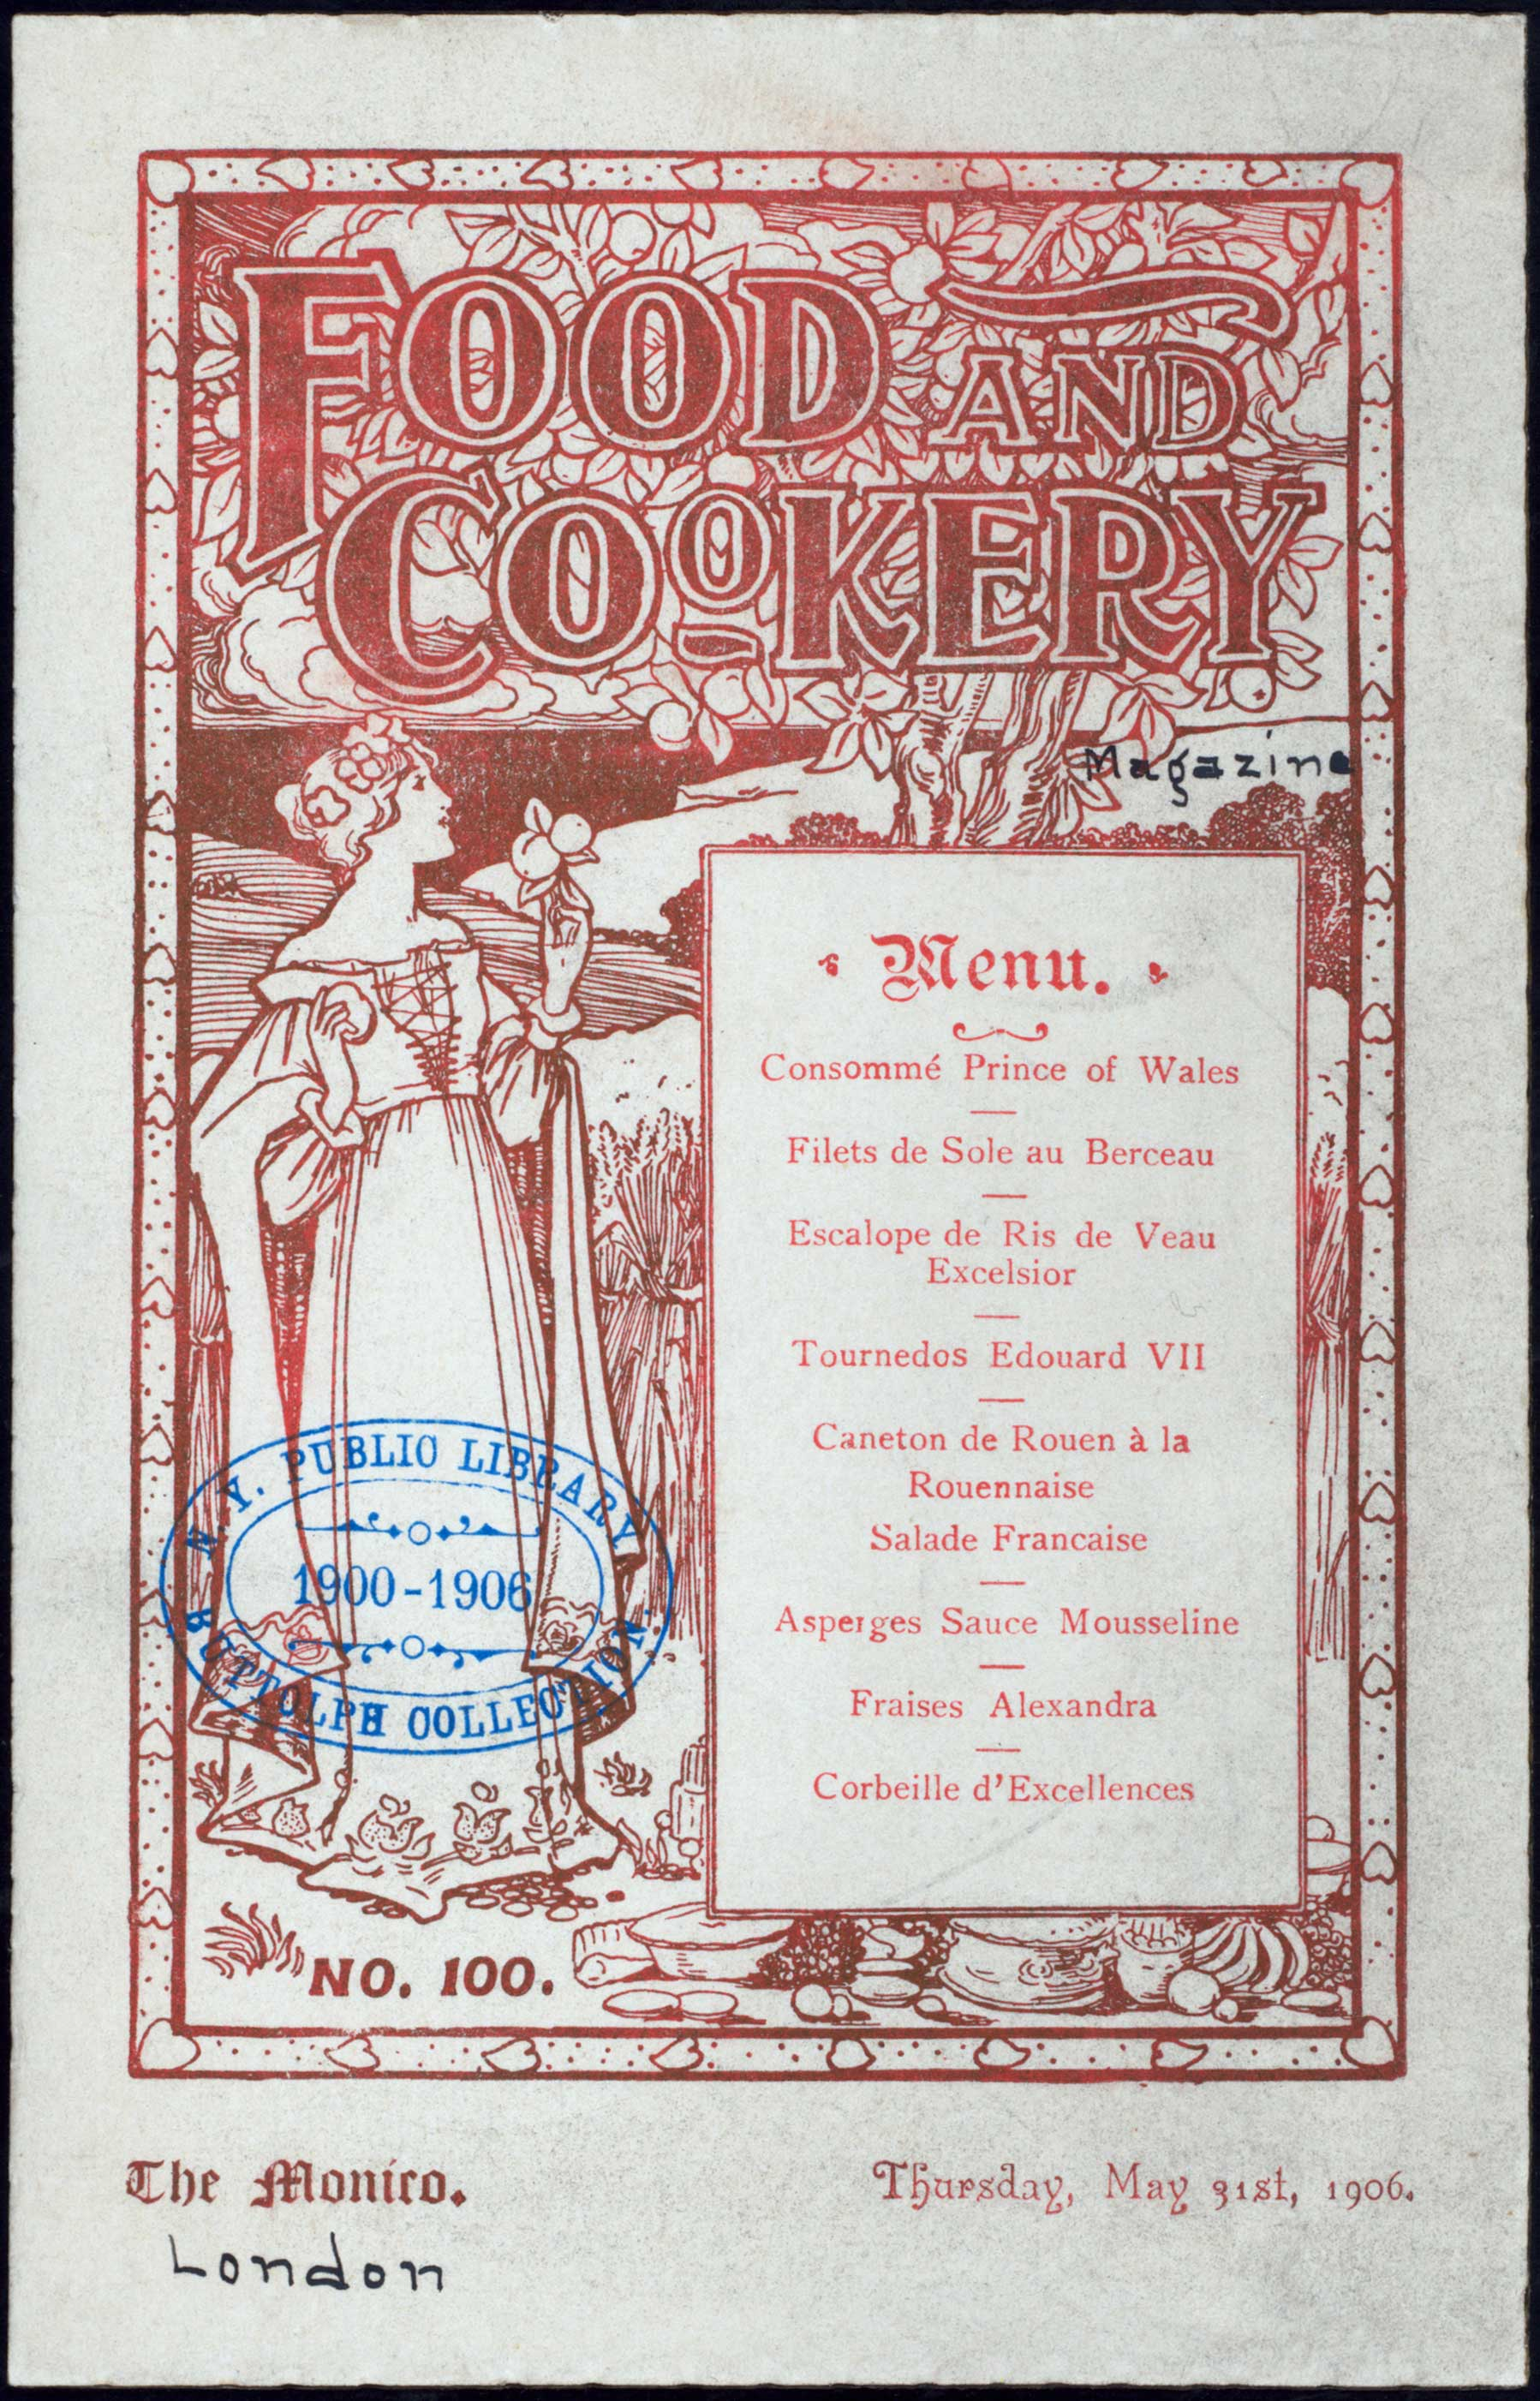 Dinner by Food and Cookery Magazine